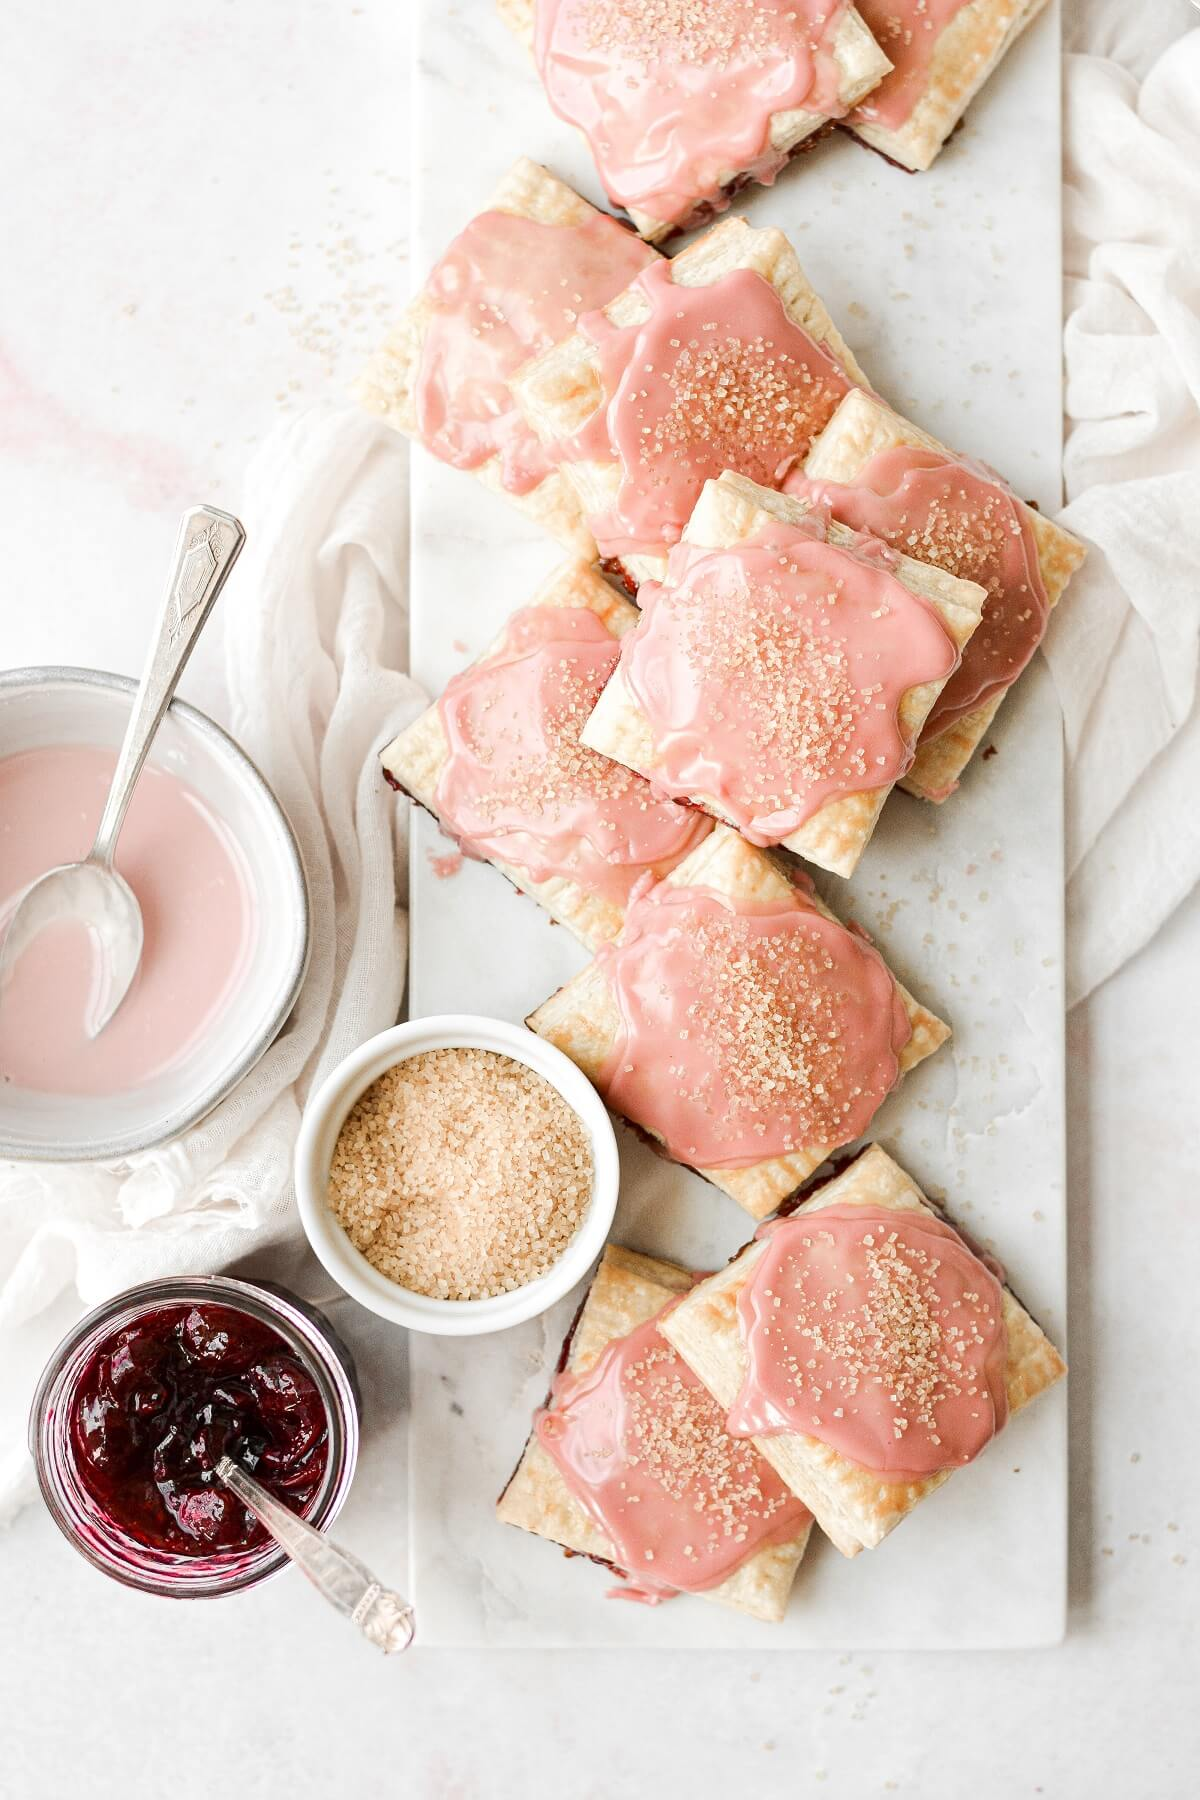 Homemade cherry pop tarts, arranged on a marble board, sprinkled with sugar.